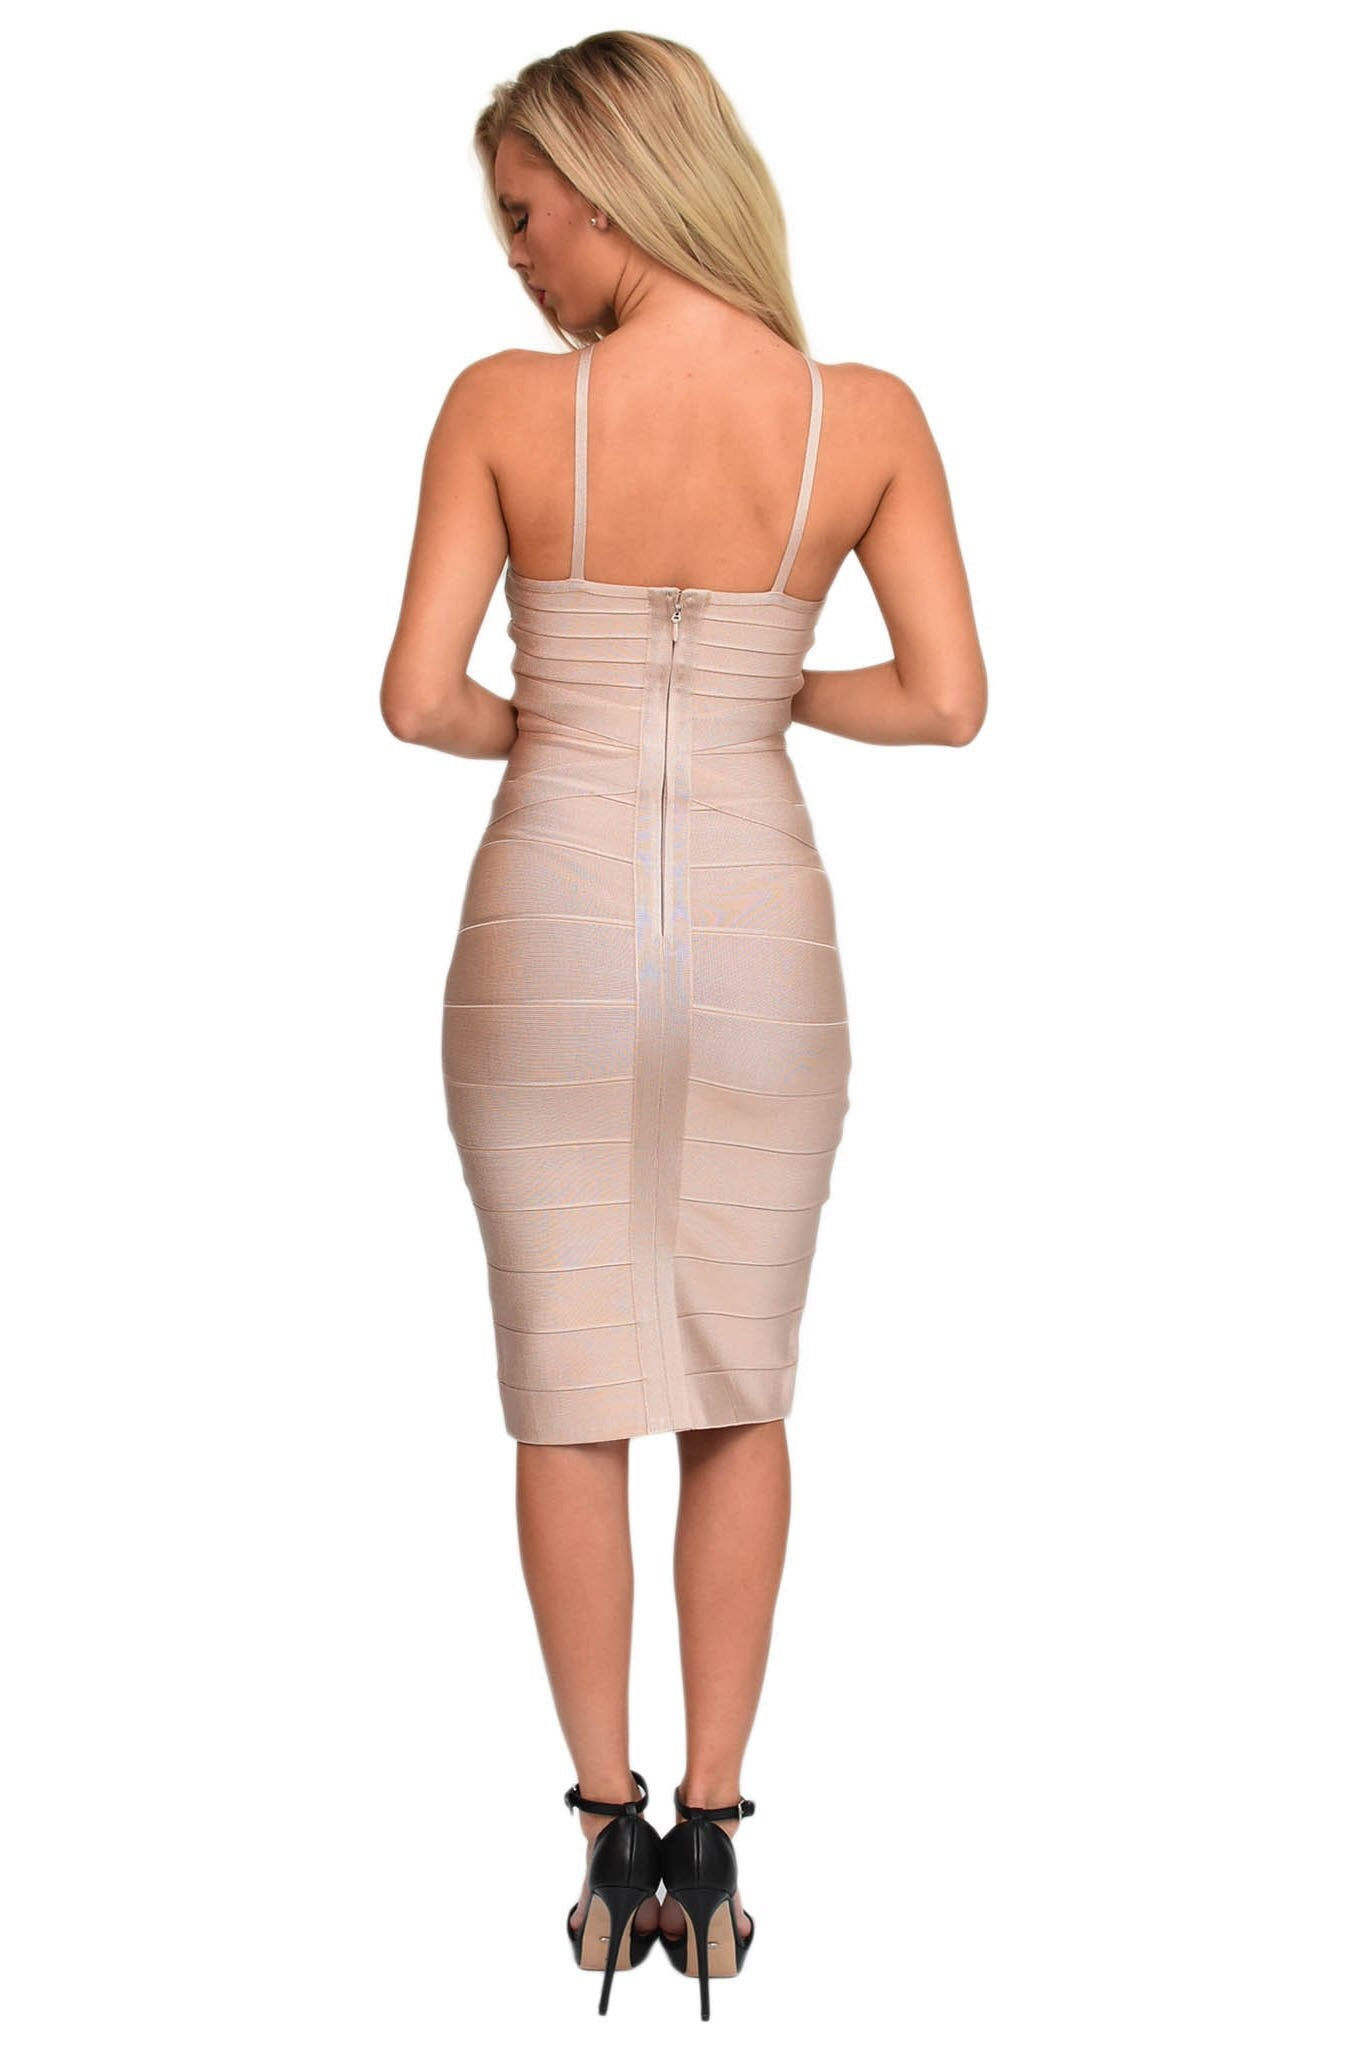 Becca Nude Two Way Bandage Dress